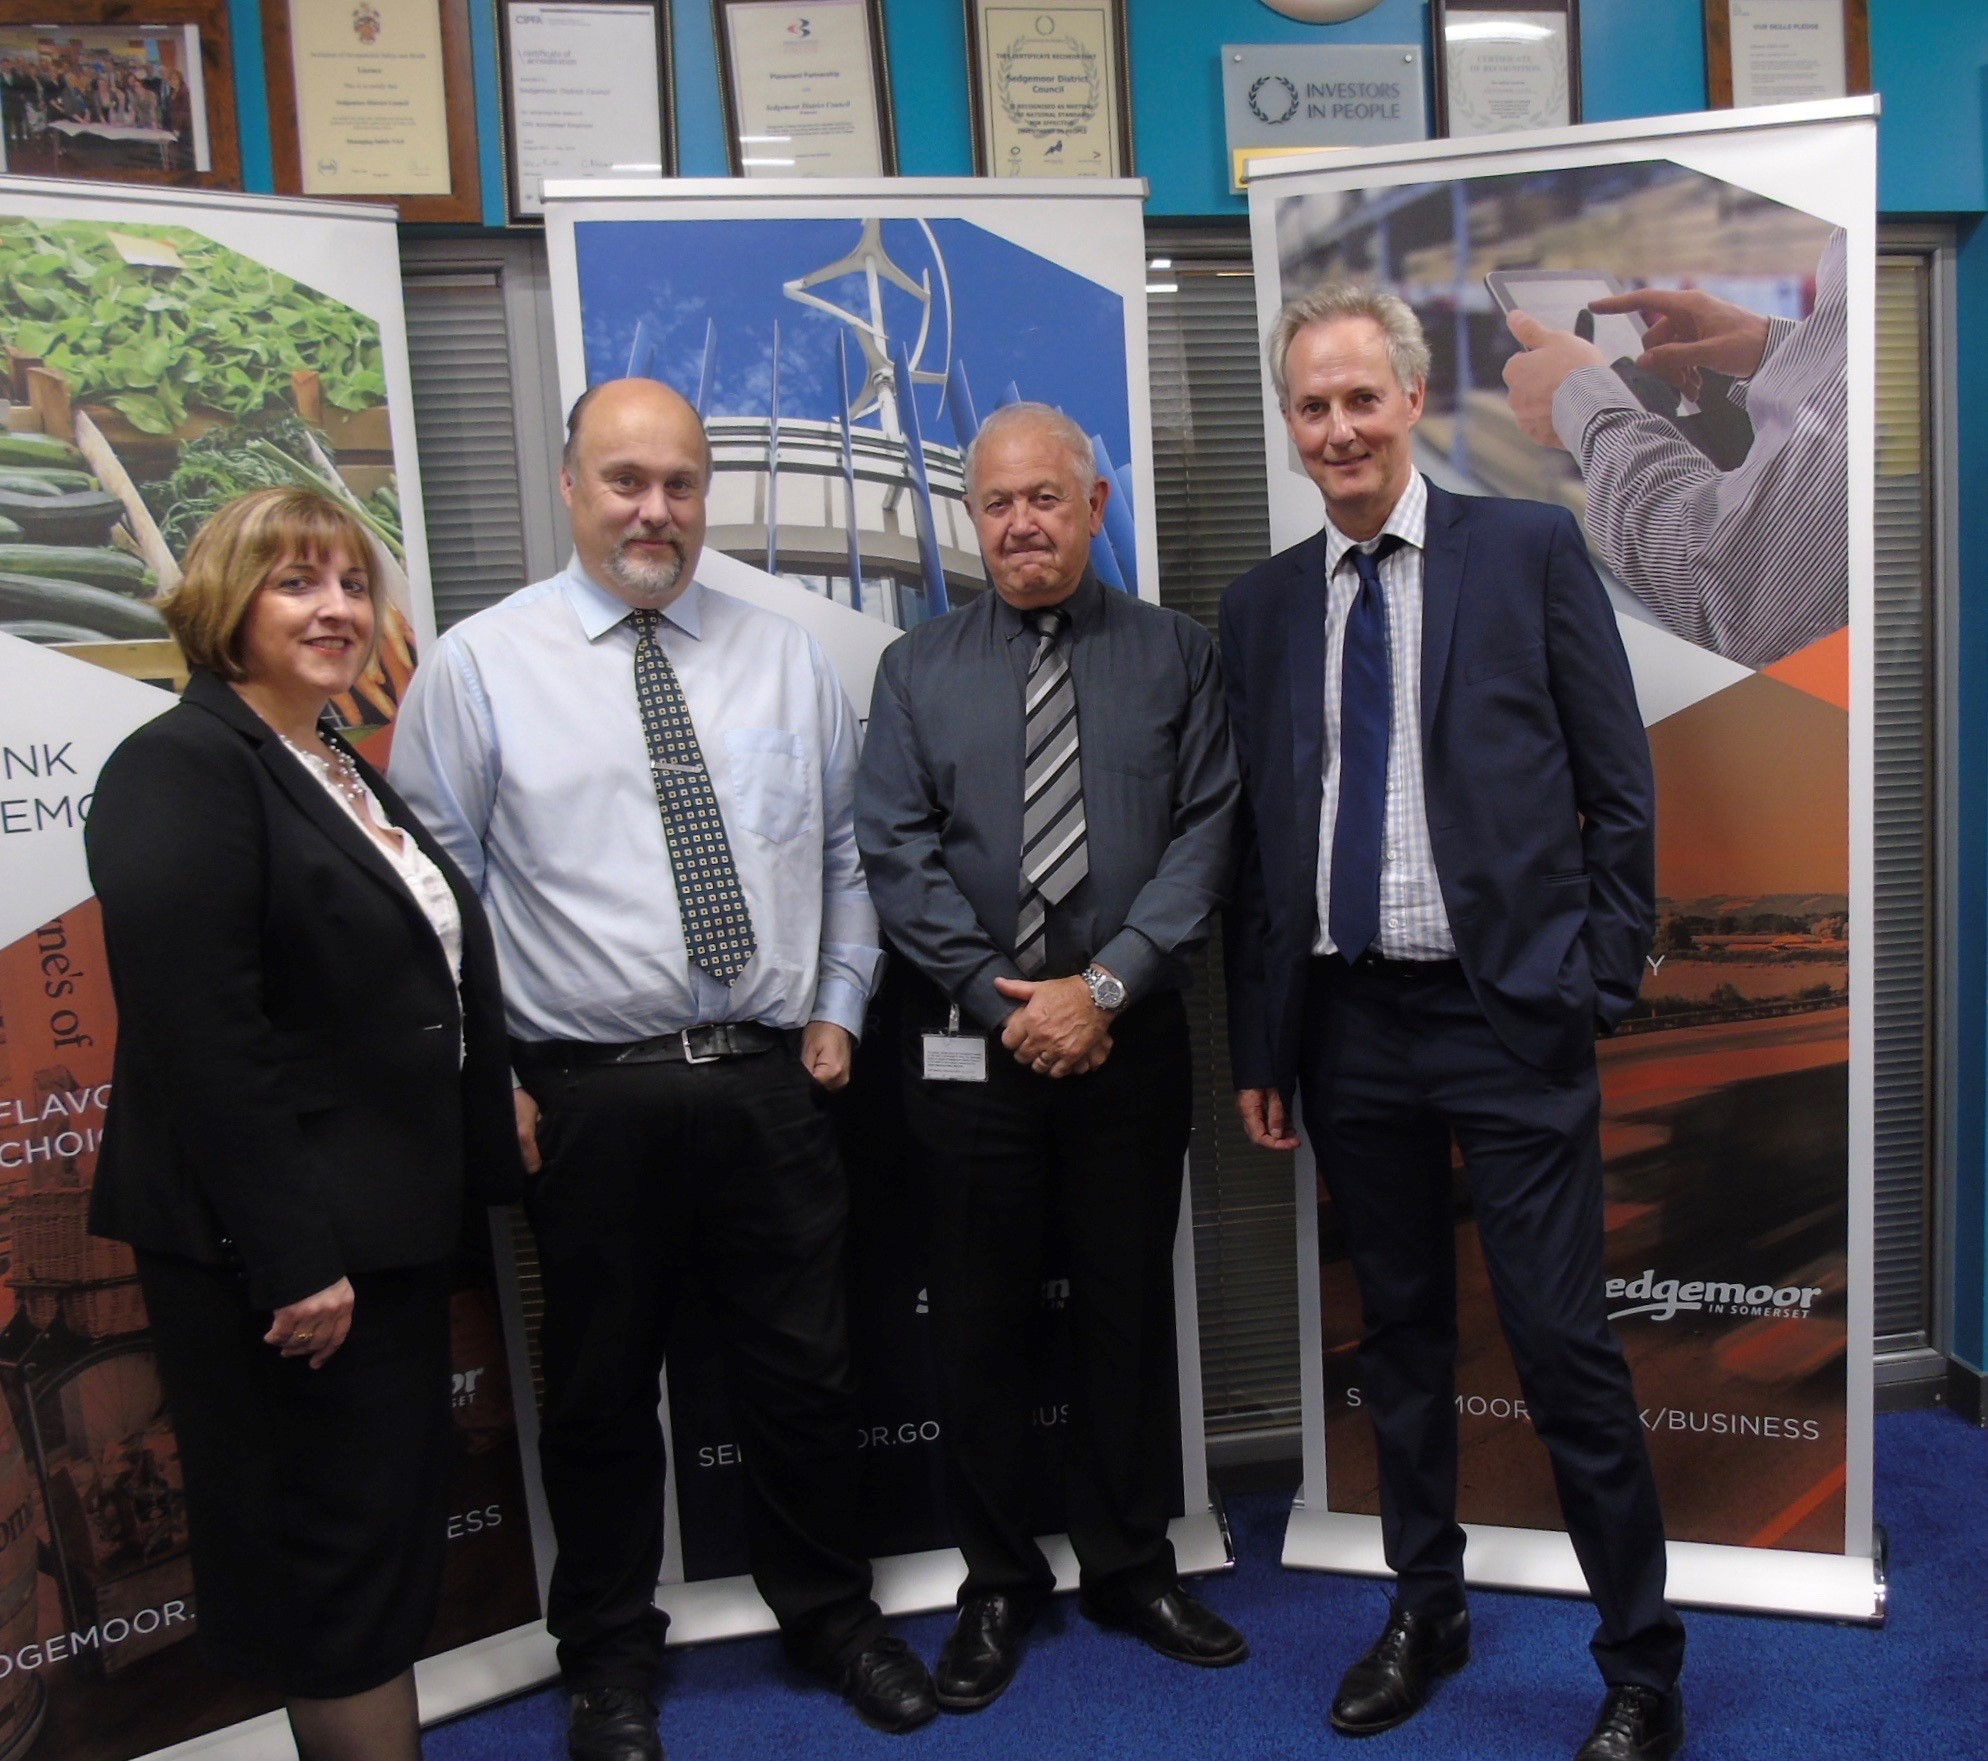 VISIT: Group Manager, Strategy and Development -Claire Pearce; Chair of Development Committee - Cllr Bob Filmer; Vice Chair Development Committee - Cllr Tony Grimes and RTPI President Stephen Wilkinson